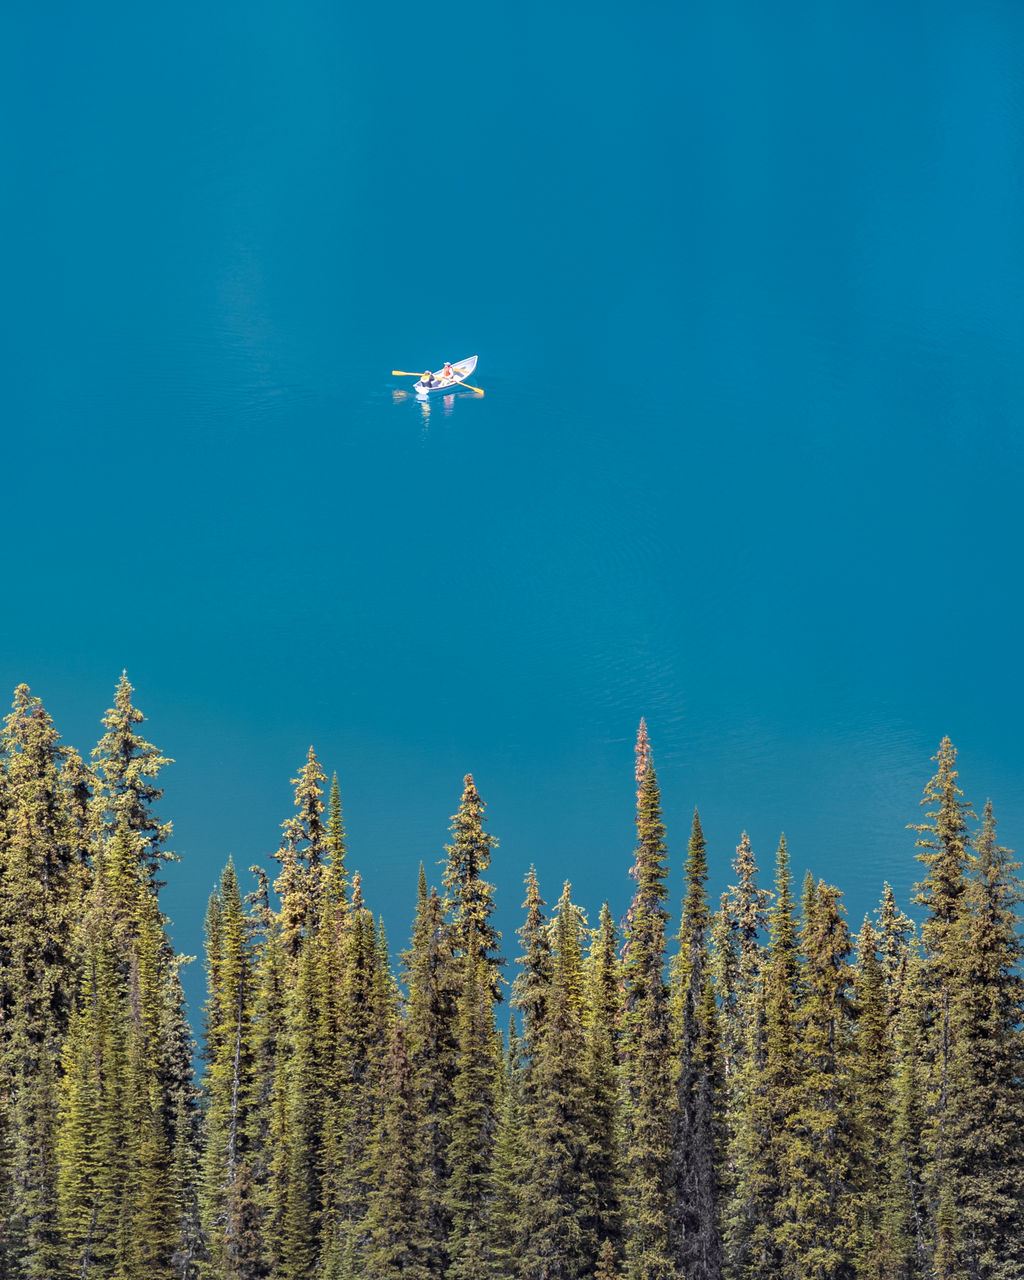 plant, tree, beauty in nature, flying, nature, sky, growth, blue, no people, low angle view, mid-air, day, mode of transportation, air vehicle, transportation, scenics - nature, tranquility, tranquil scene, airplane, clear sky, outdoors